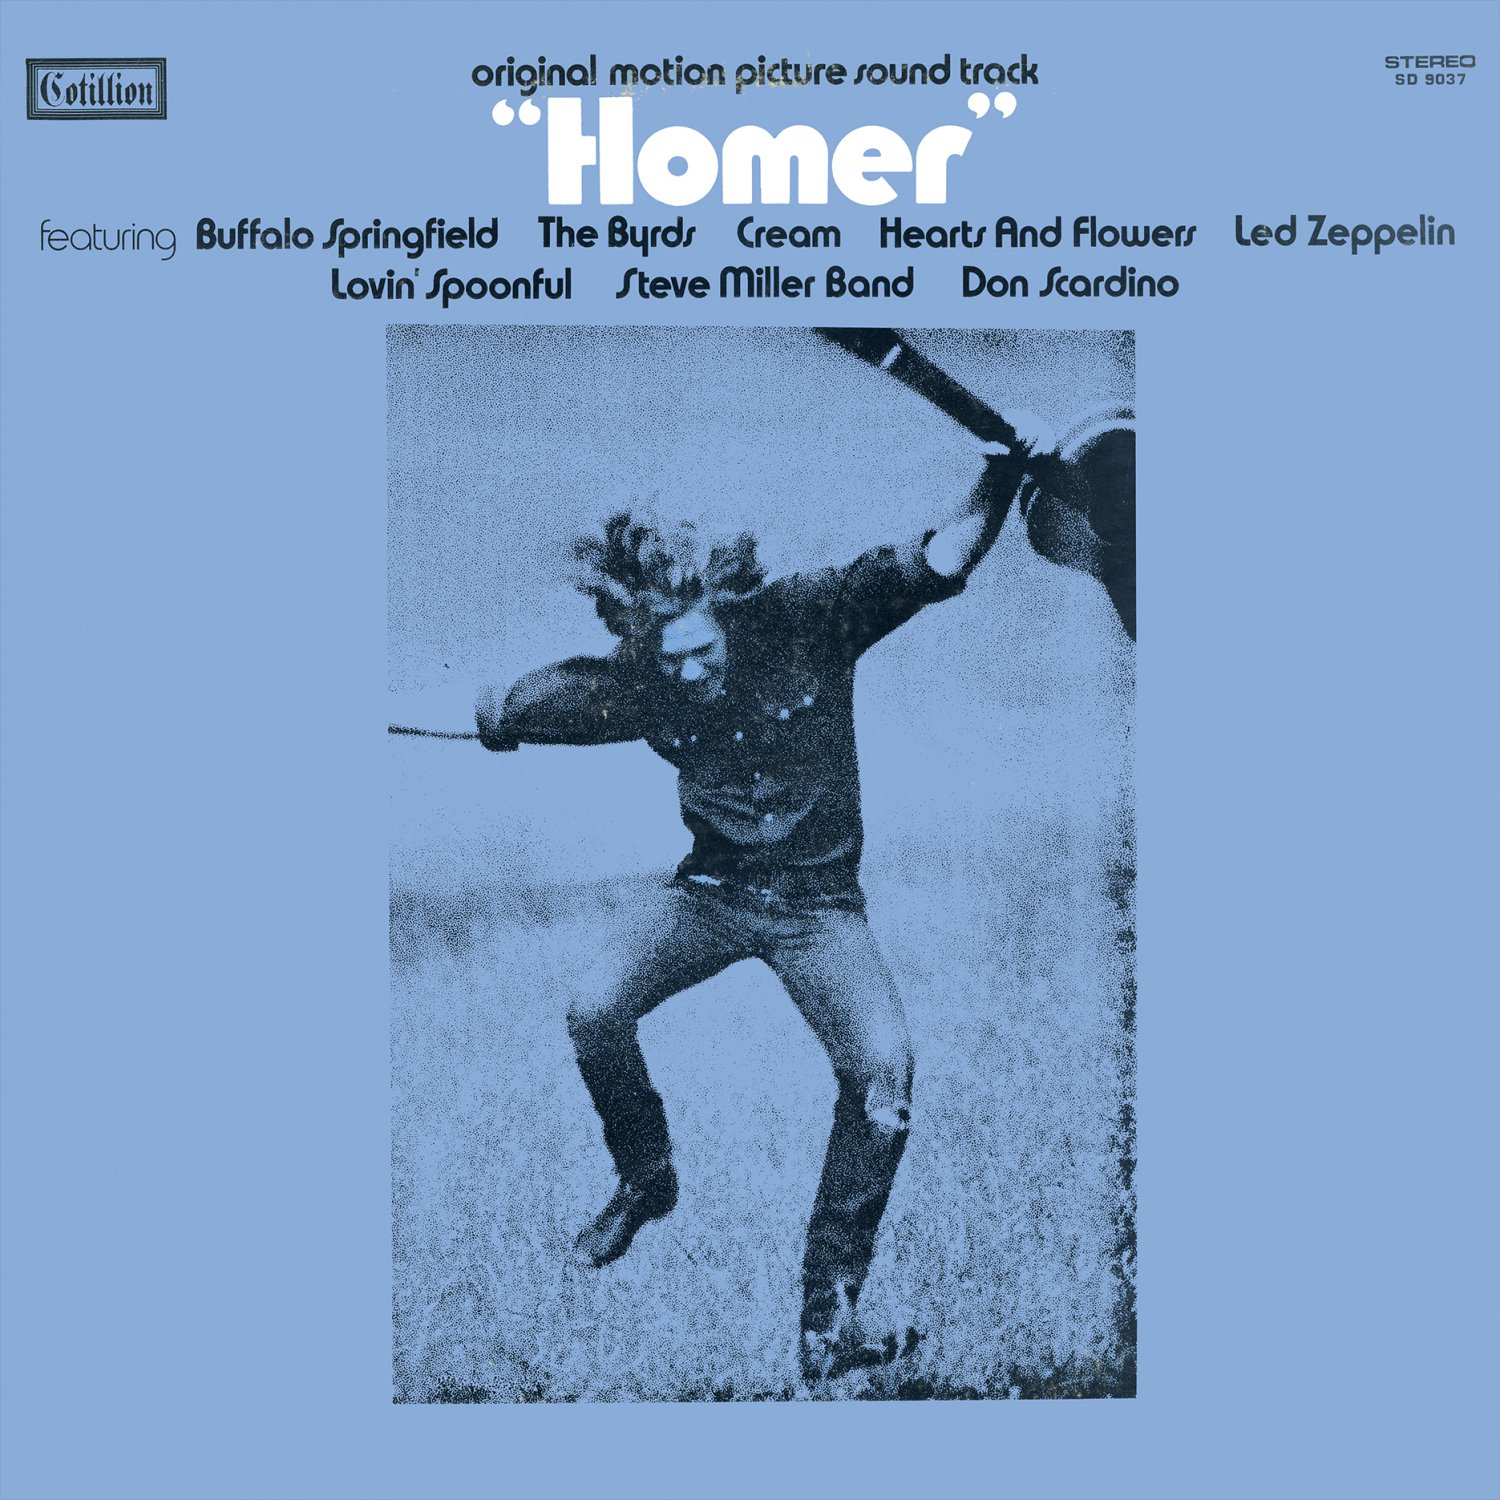 Homer - Original Soundtrack, Buffalo Springfield OST LP/CD